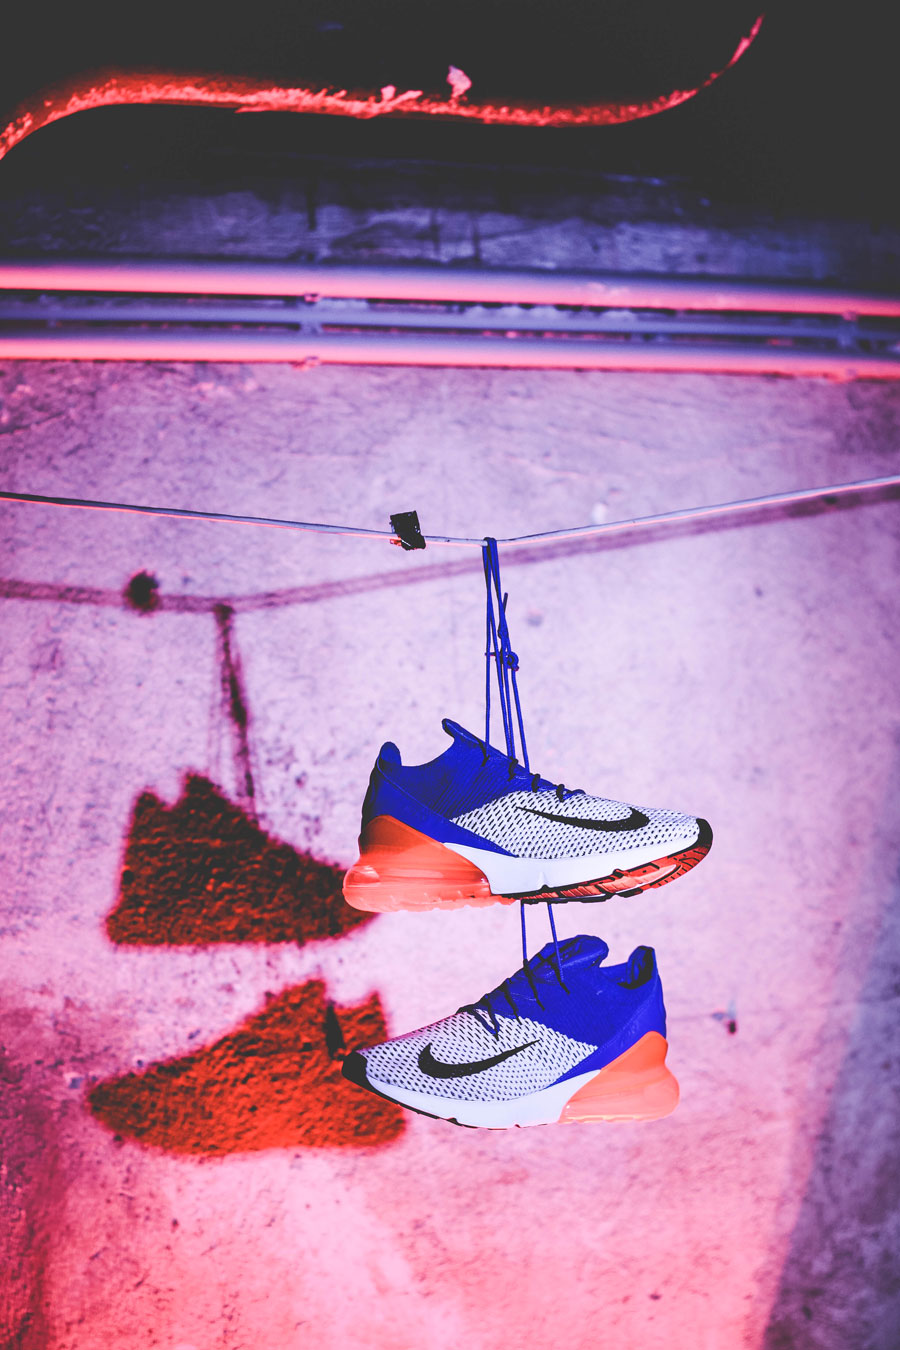 SHOTS IN THE AIR Sneaker Photography Contest - Niklas Datum